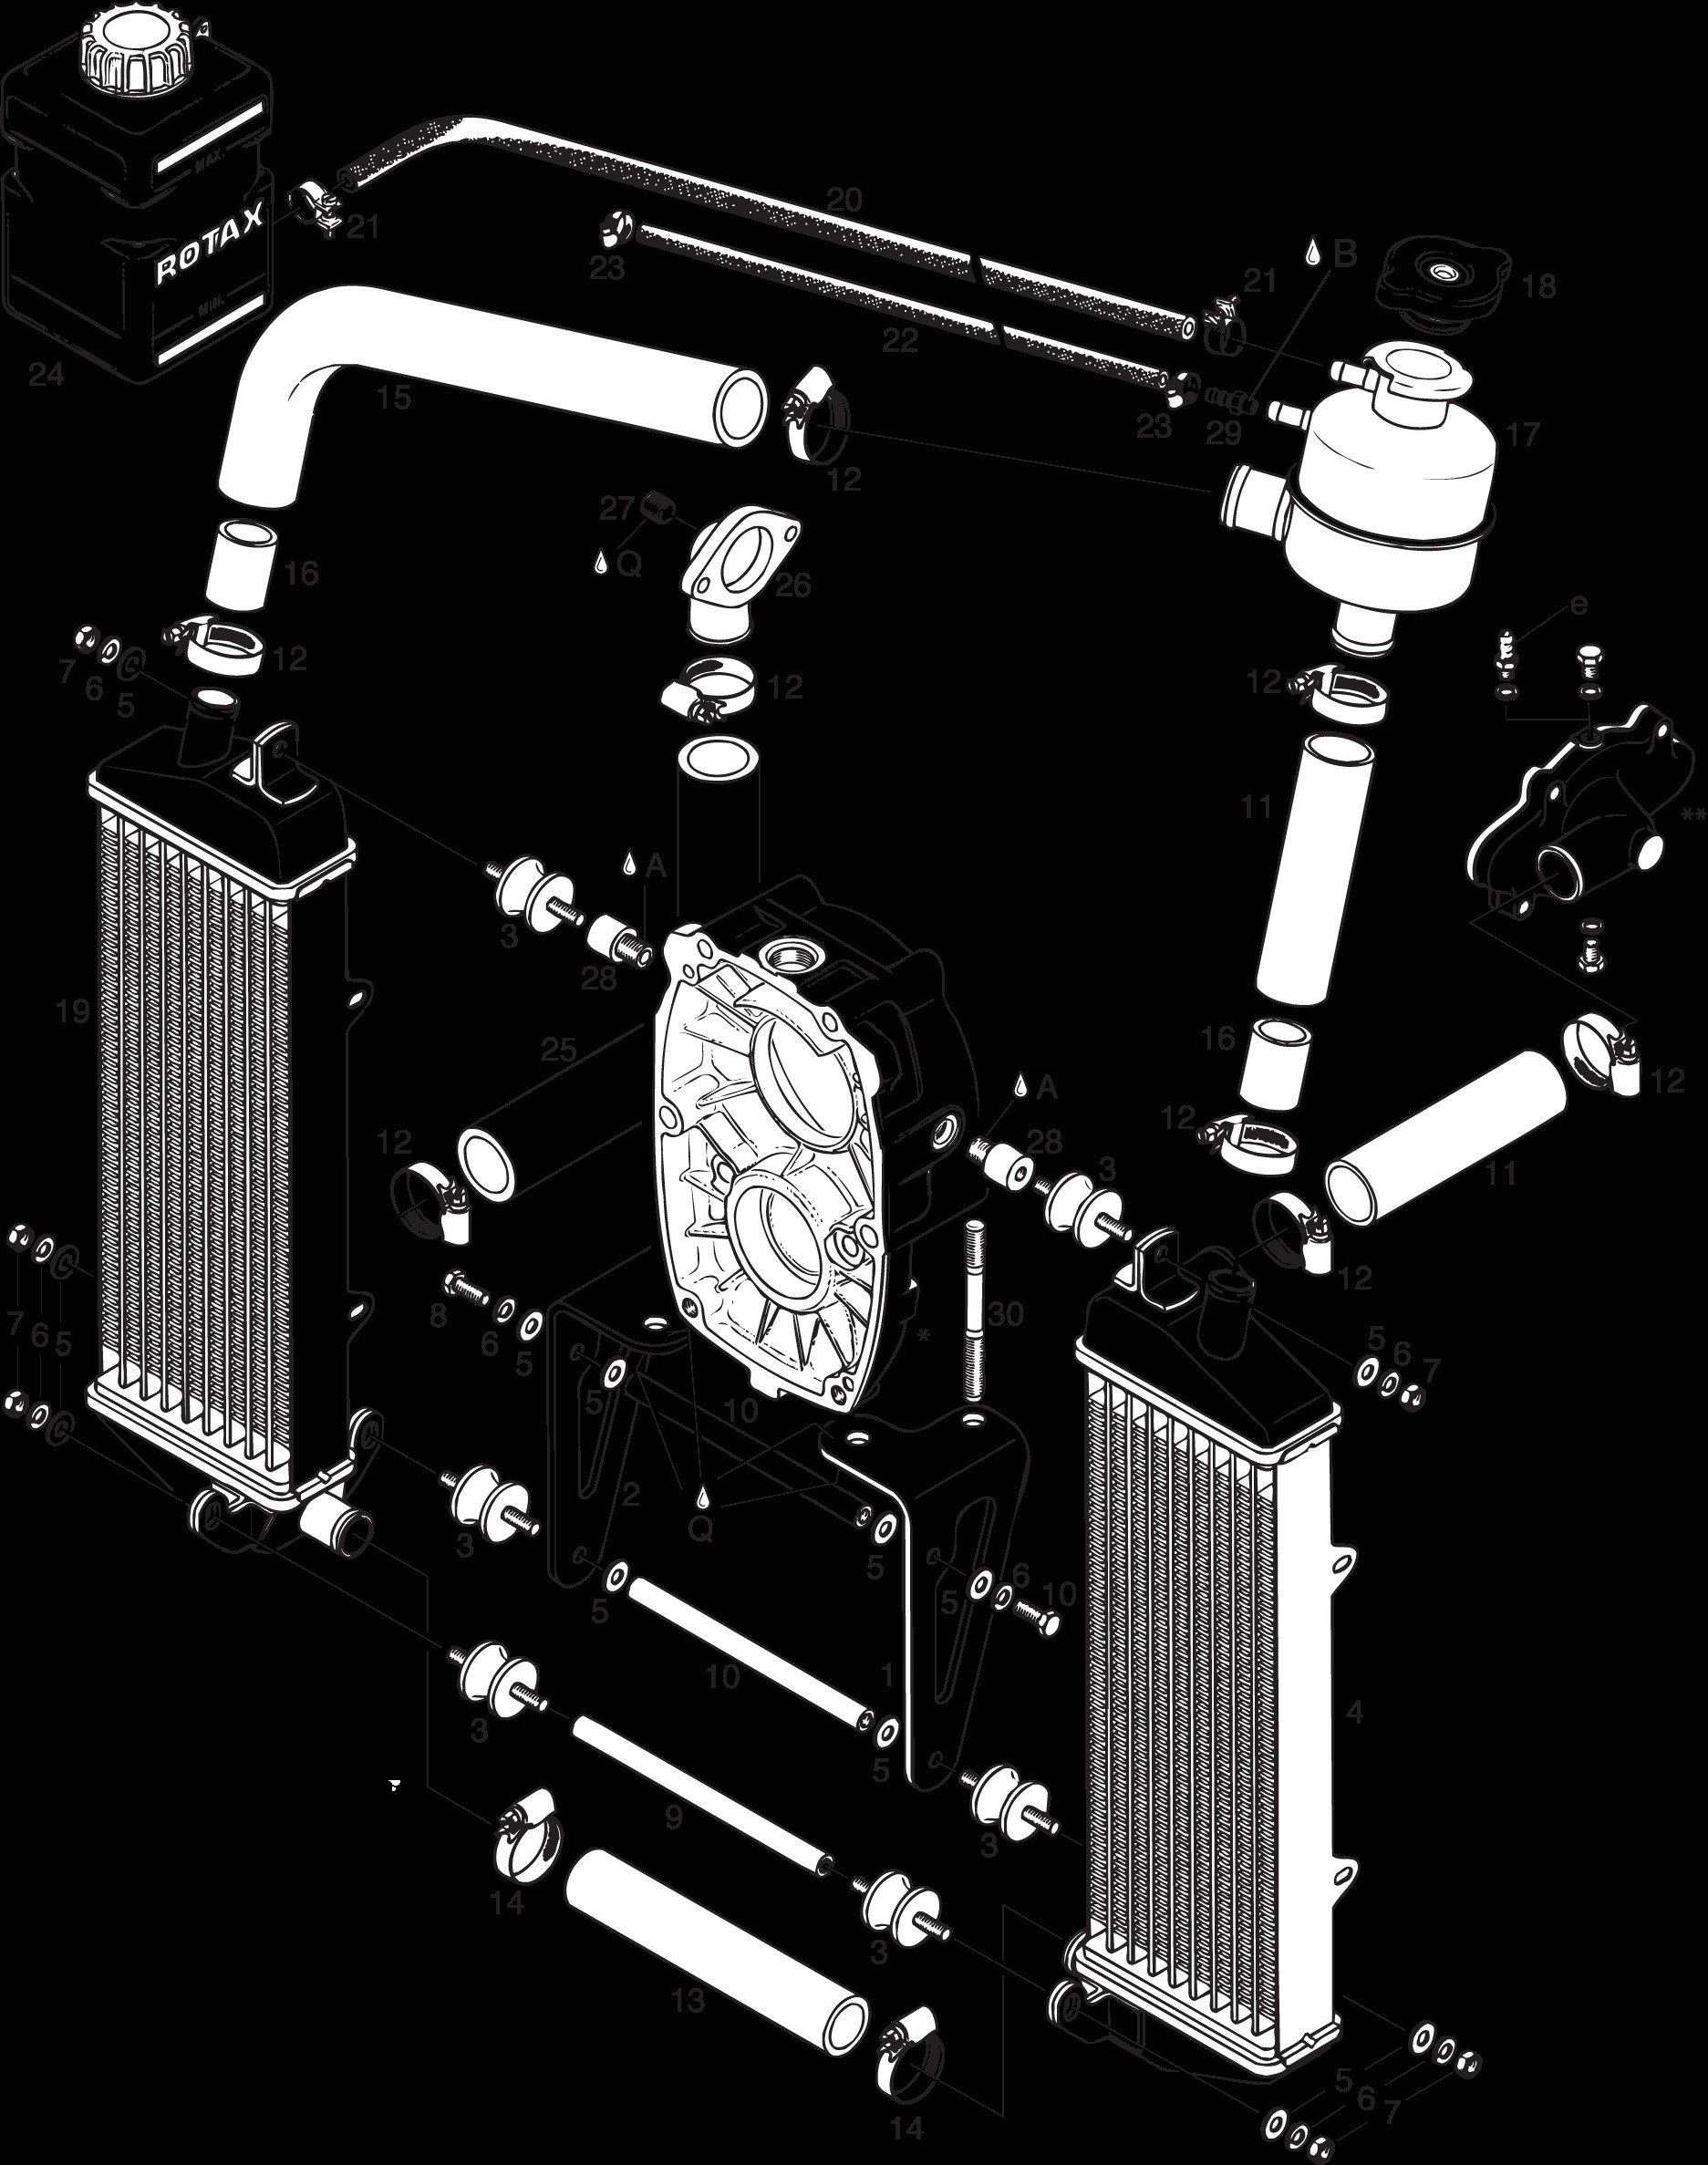 Rotax Engine Diagram 2 Piece Radiator Set for Inverted Engine Installation Rotax 582 Ul Of Rotax Engine Diagram Ulpower Ul260i